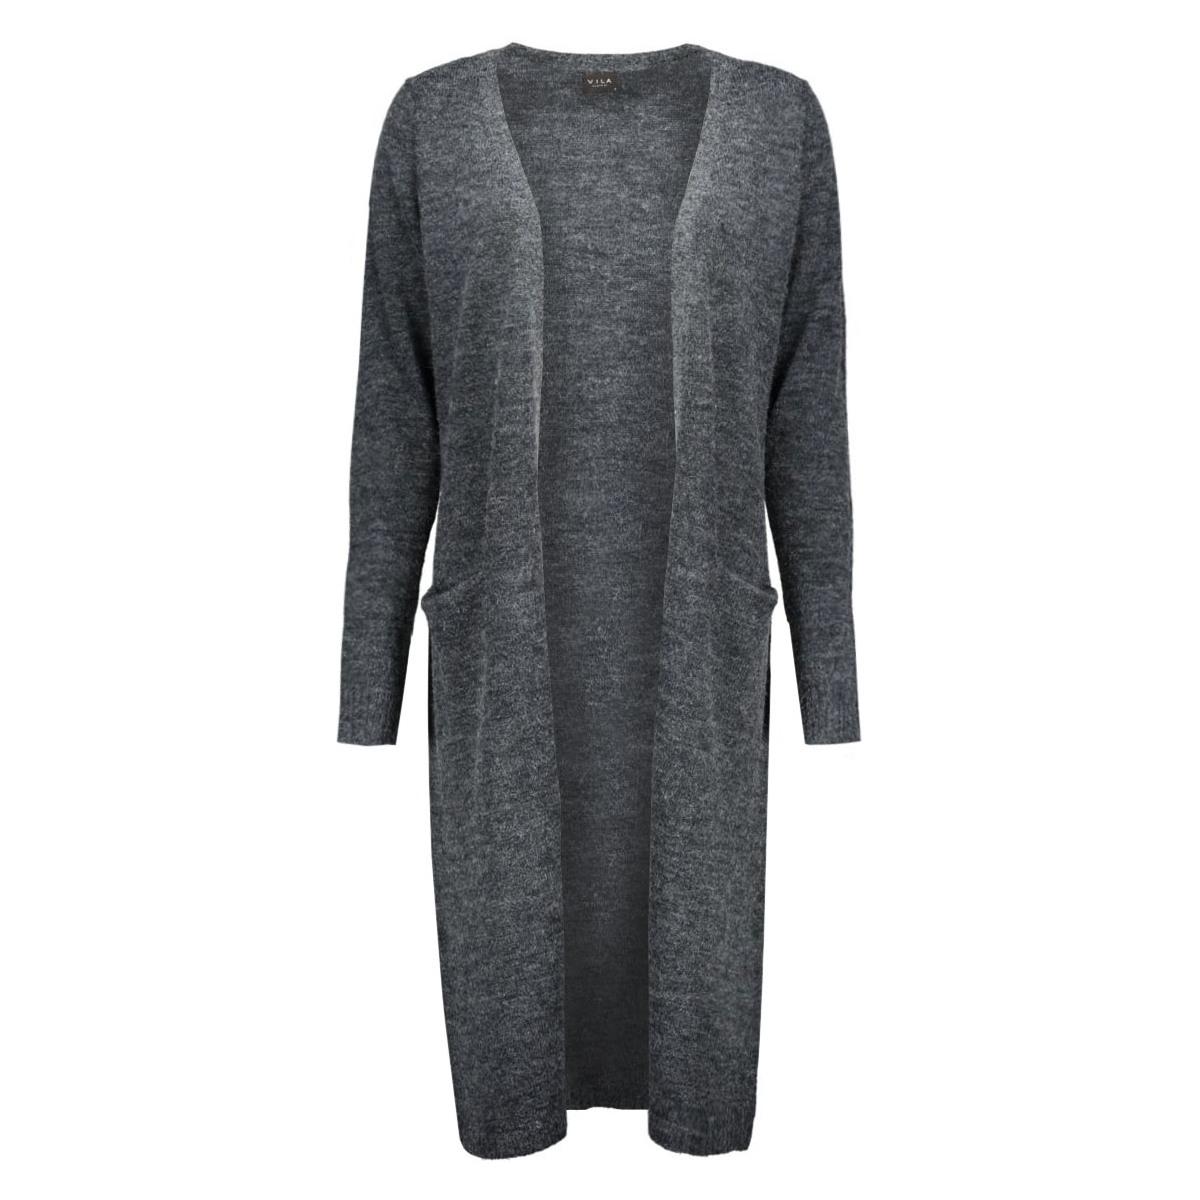 riva long knit cardigan-noos 14015571 vila vest total eclipse